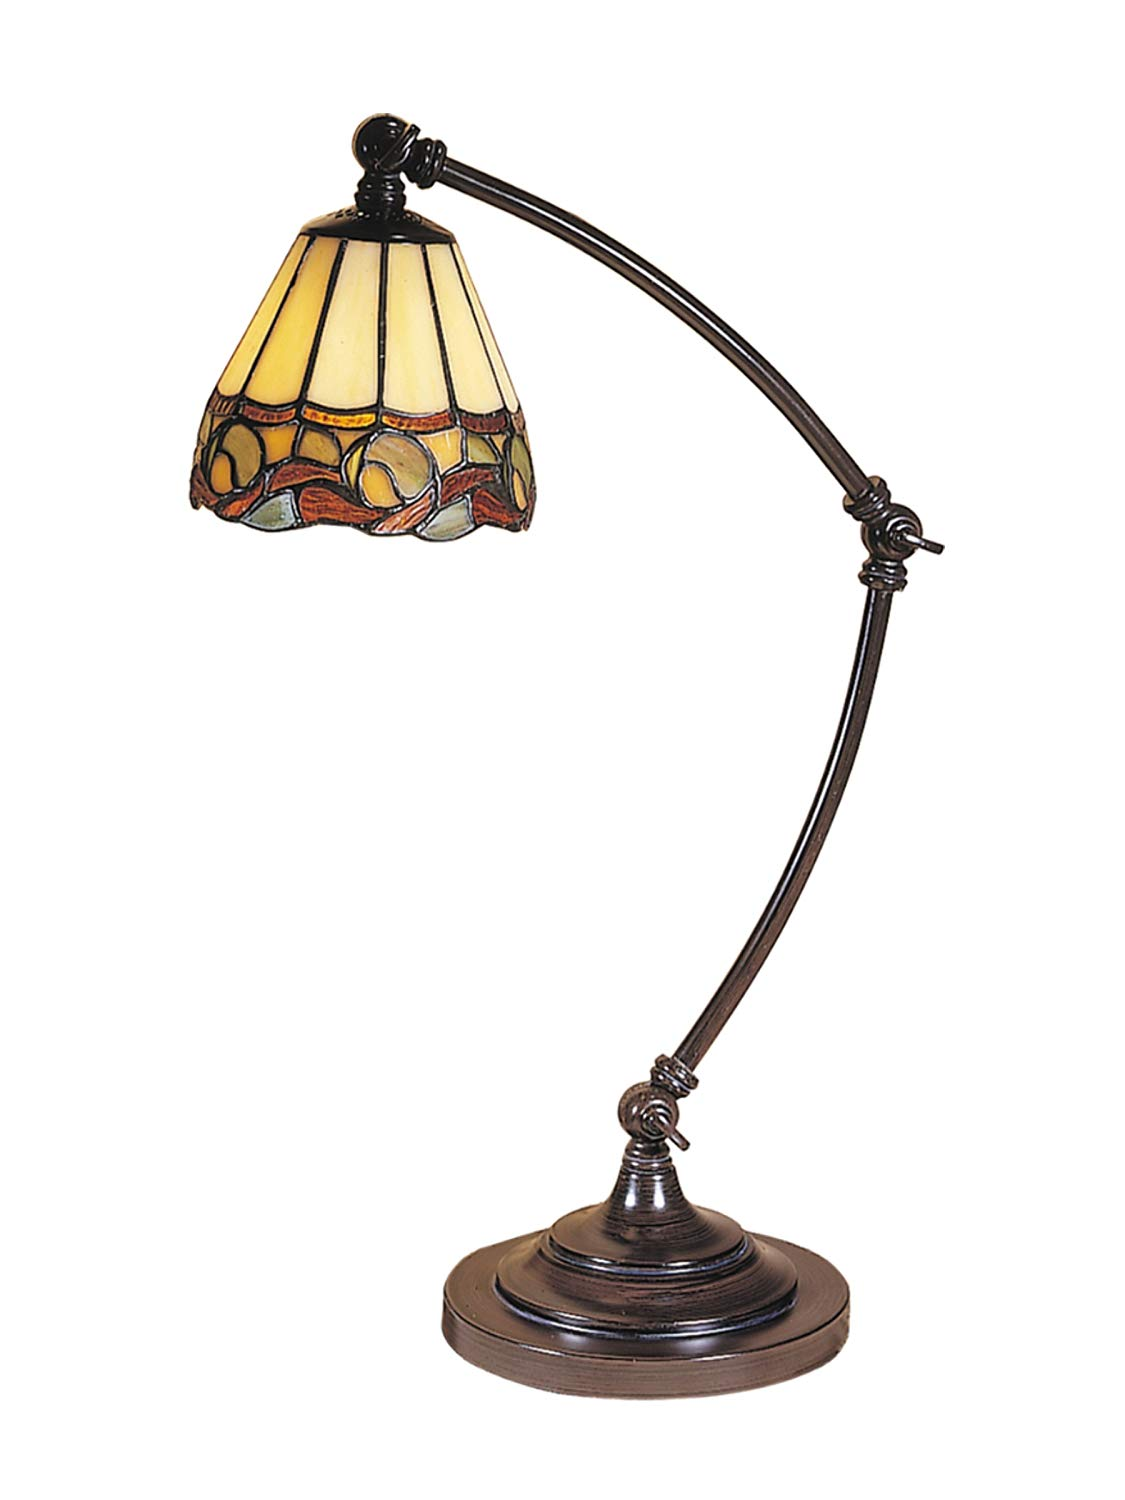 dale tiffany ainsley desk lamp mica accent table lamps bronze unique home decor rustic patio furniture handmade runner pottery barn headboard round occasional tables with drawers